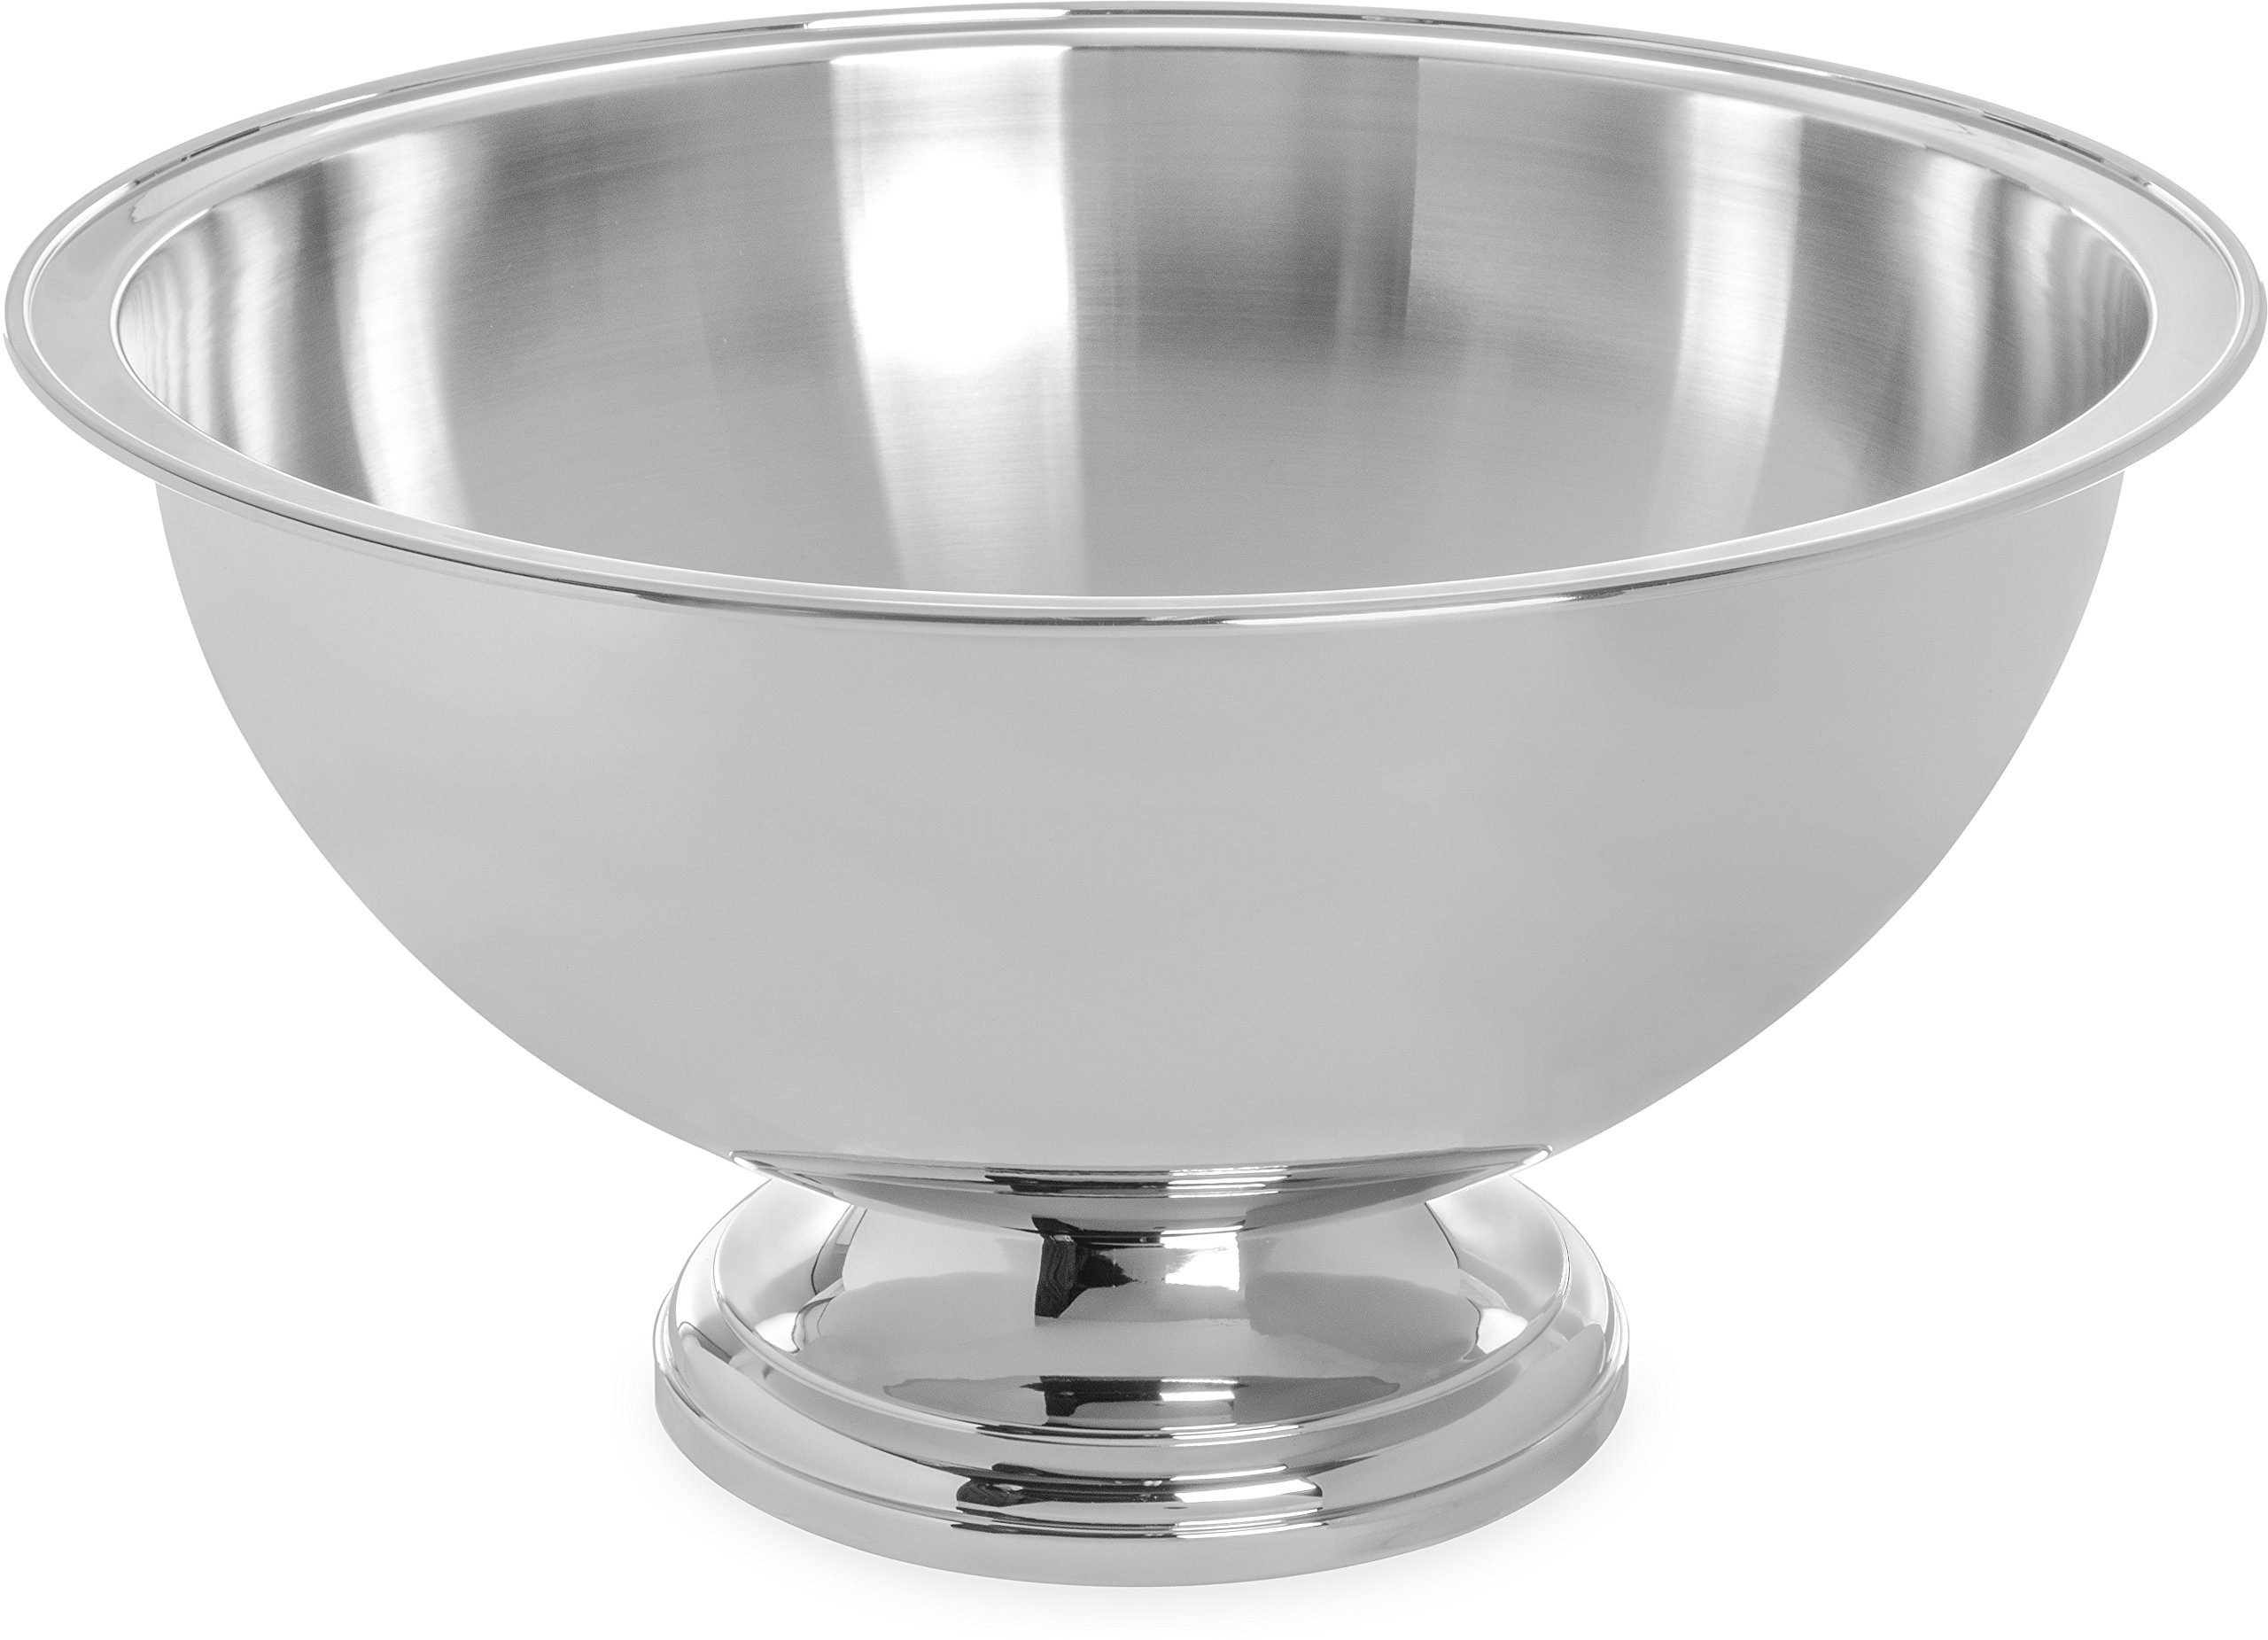 Carlisle 609316 Stainless Steel 18-8 Punch/Serving Bowl with Mirror-Polished Finish, 16 quart Capacity, 18'' Diameter by Carlisle